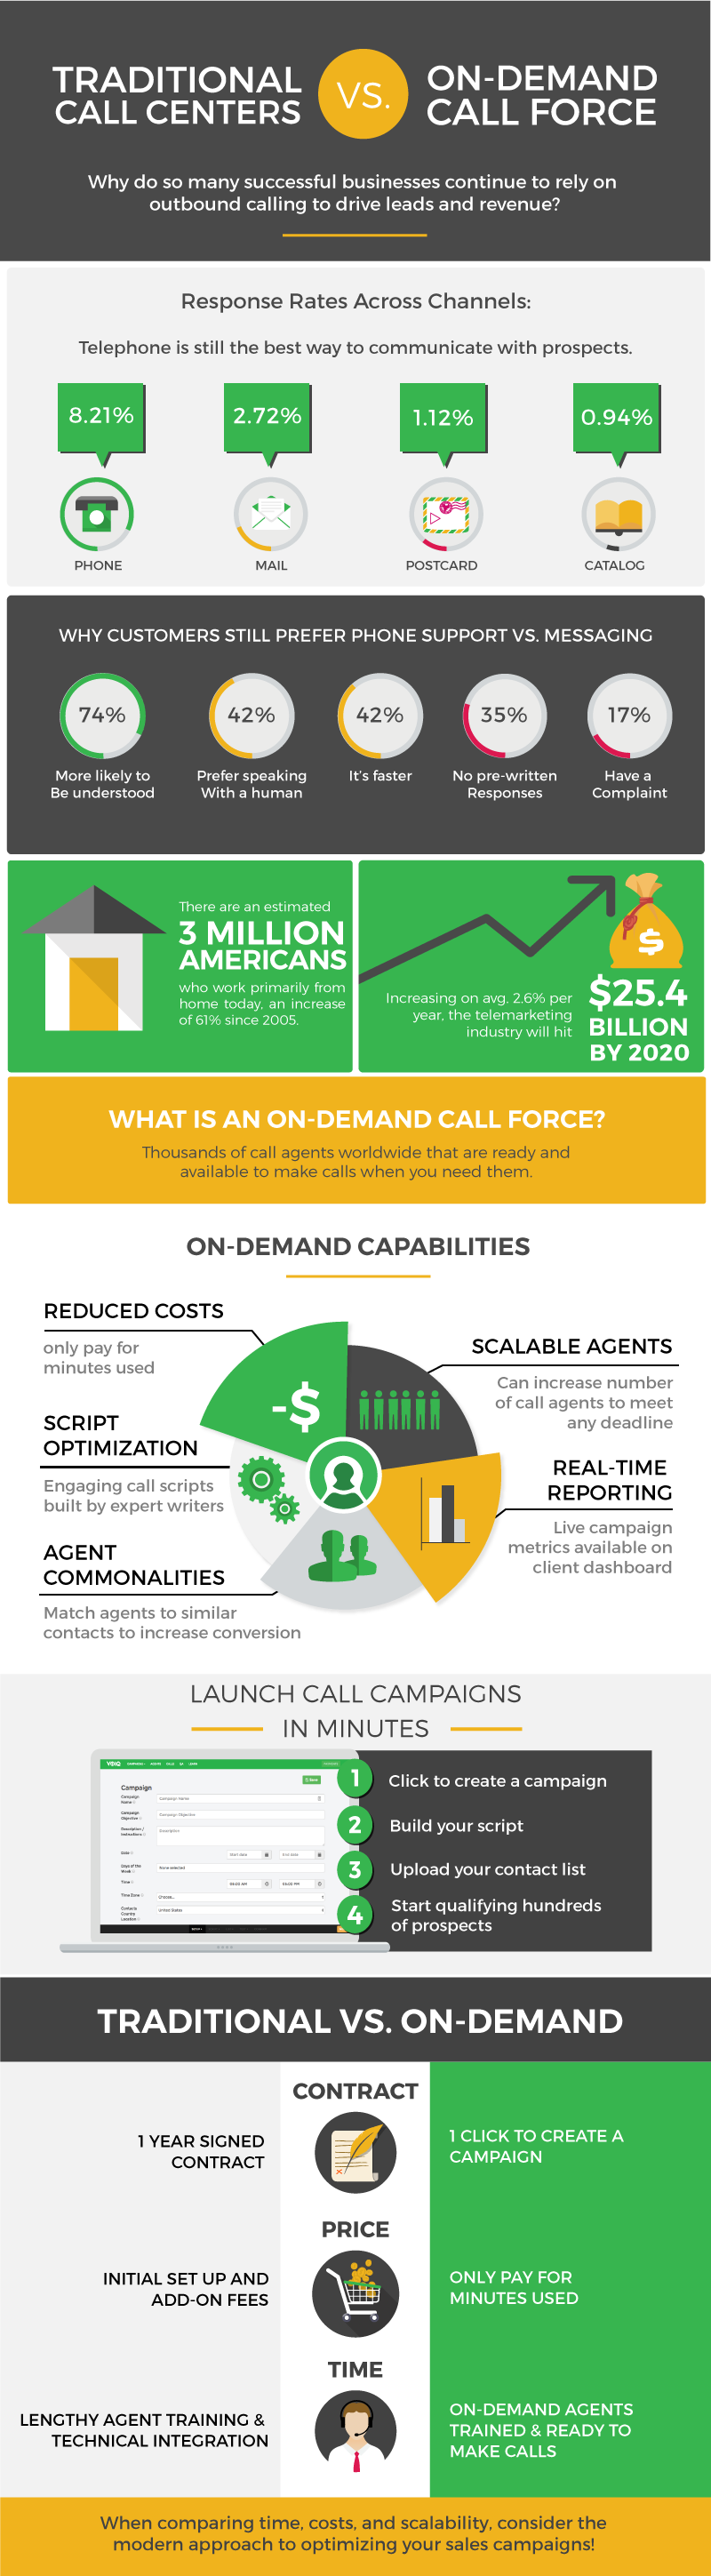 VOIQ Infographic: Traditional Call Centers vs. On-Demand Call Force